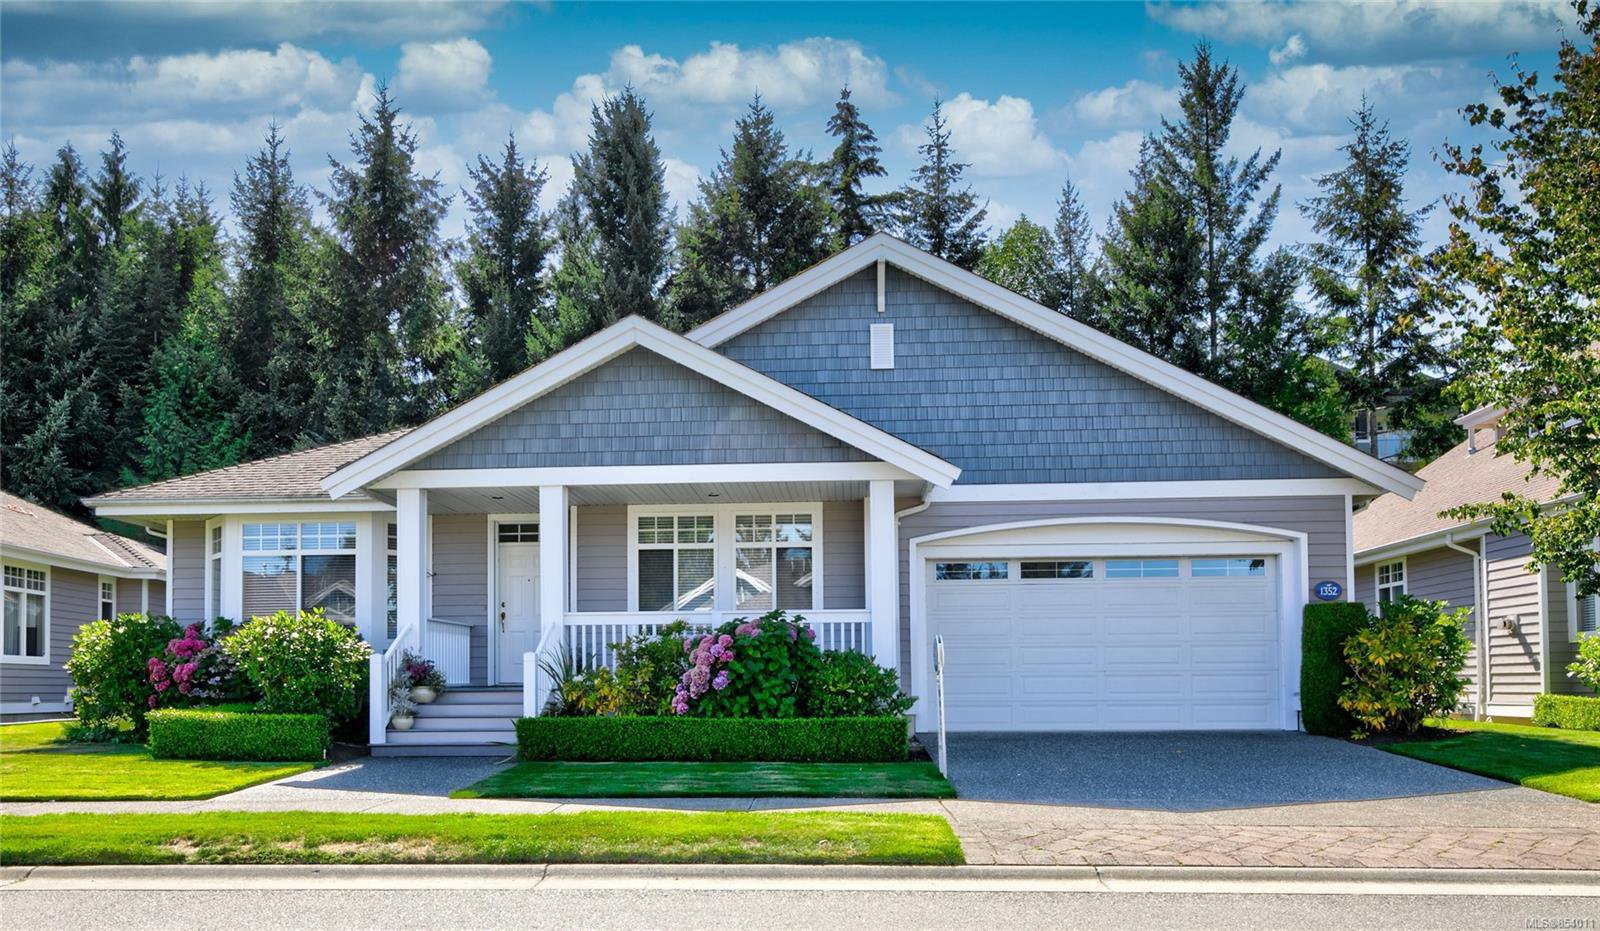 Main Photo: 1352 Gabriola Dr in : PQ Parksville Row/Townhouse for sale (Parksville/Qualicum)  : MLS®# 854011